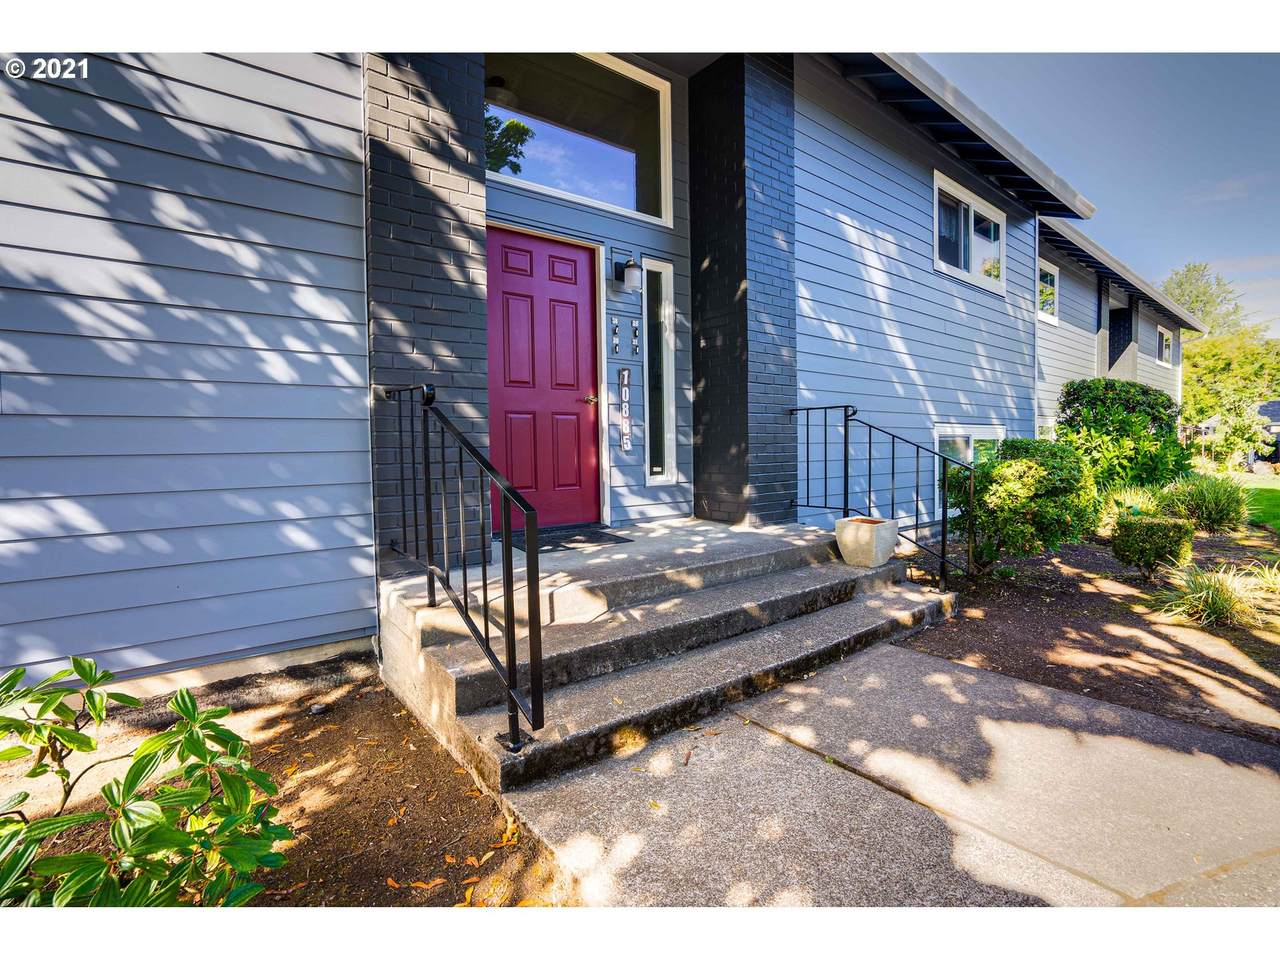 10930 Meadowbrook Dr - Photo 1